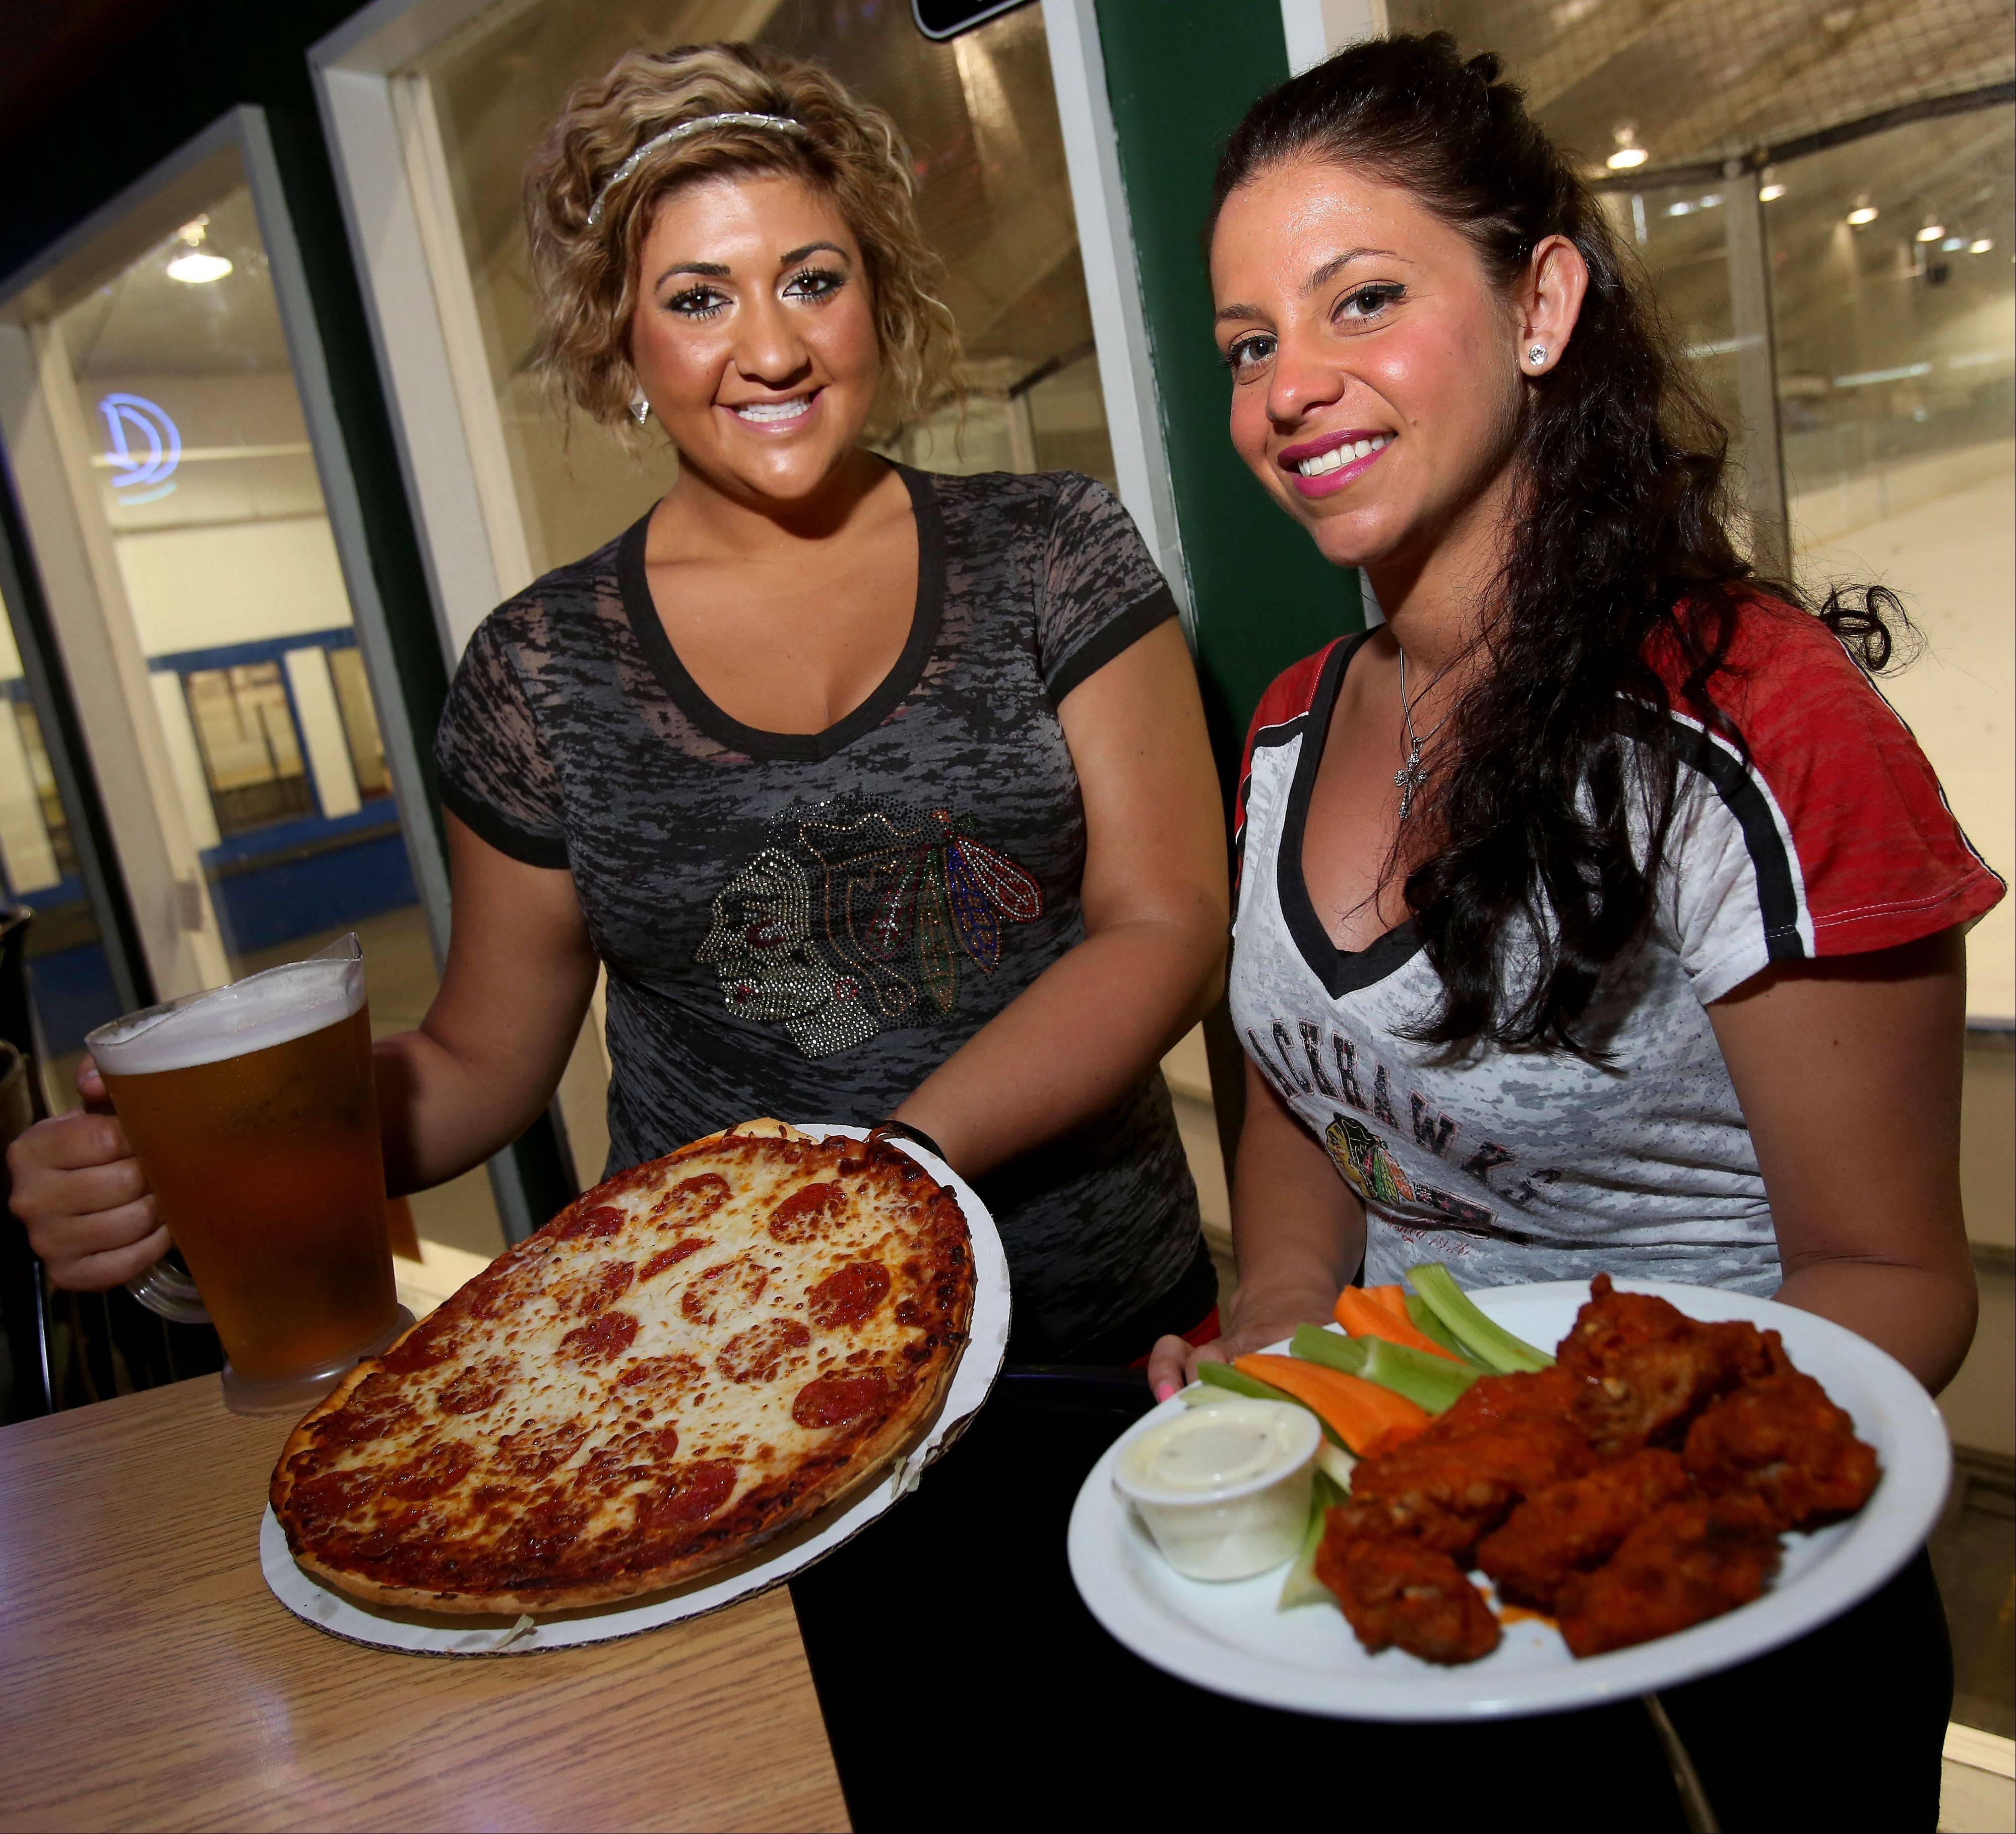 Hawks fans can enjoy pizza, beer and wings served up by Dani D'Ambrose, left, and Jessica Larsen at the Blue Line Bar & Grill in Addison.